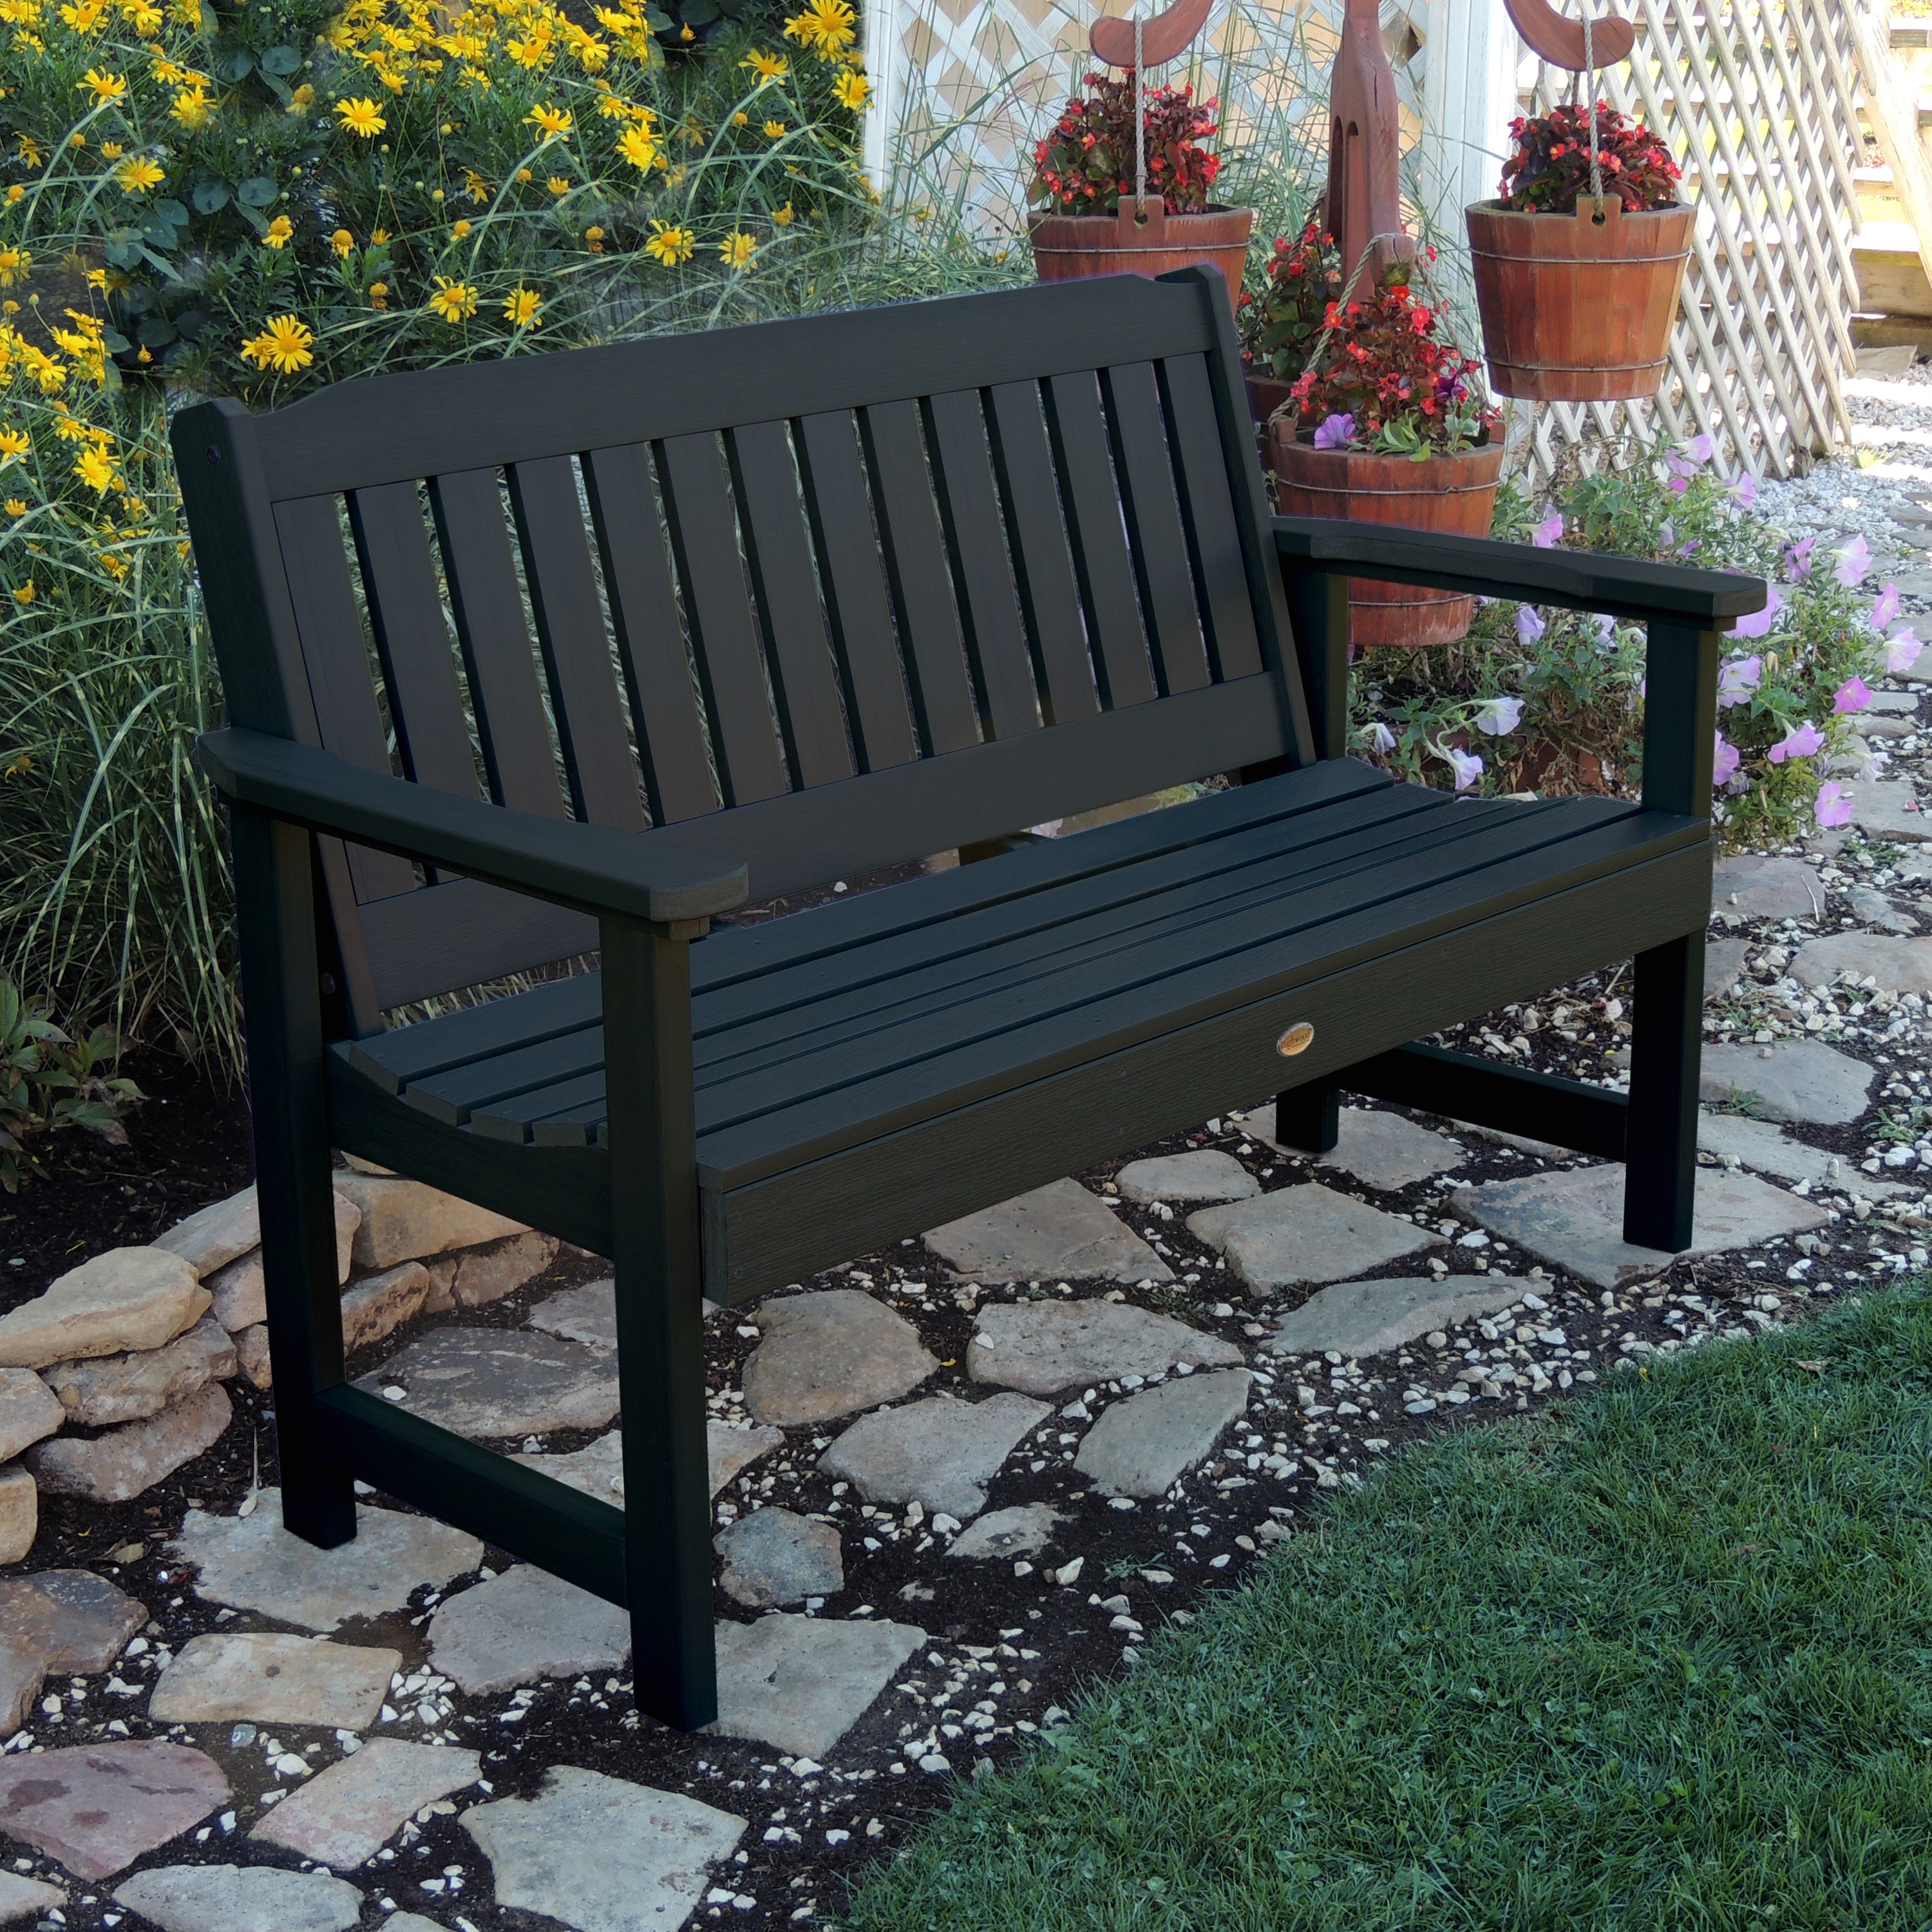 benches outdoor access product recycled bench products wheelchair plastic replas use for furniture